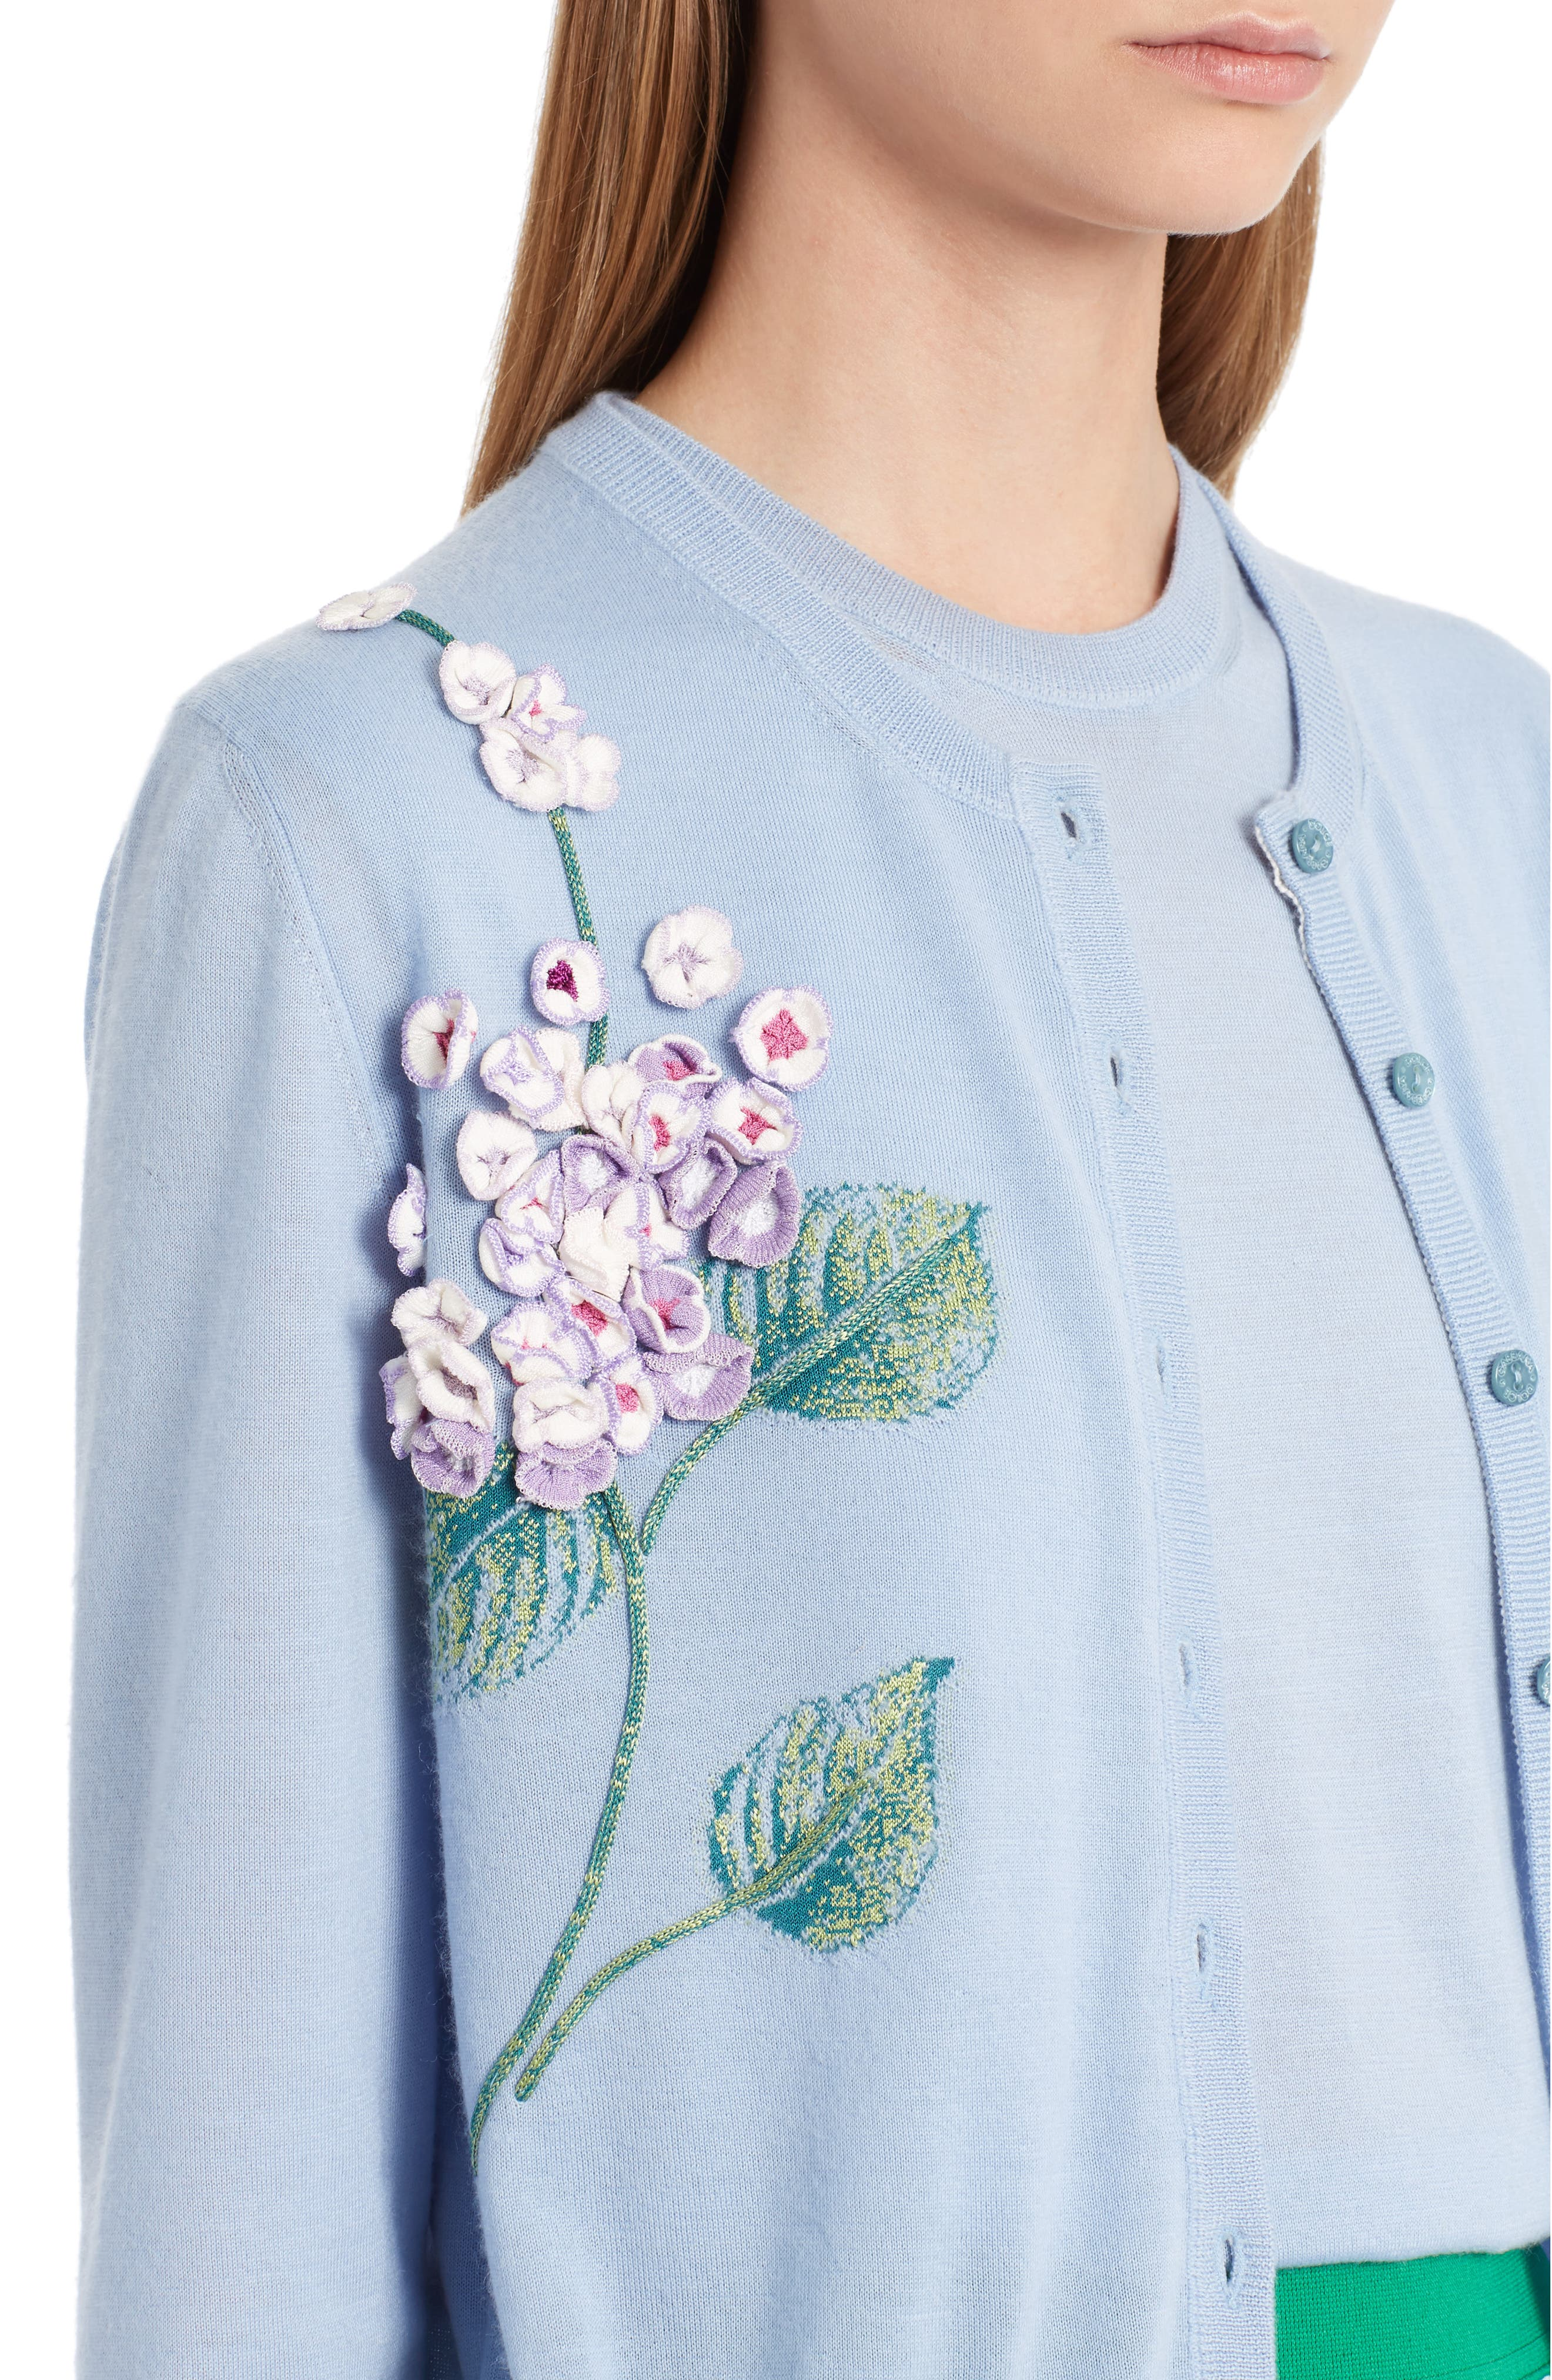 Embellished Cashmere & Silk Button Cardigan,                             Alternate thumbnail 5, color,                             Light Blue